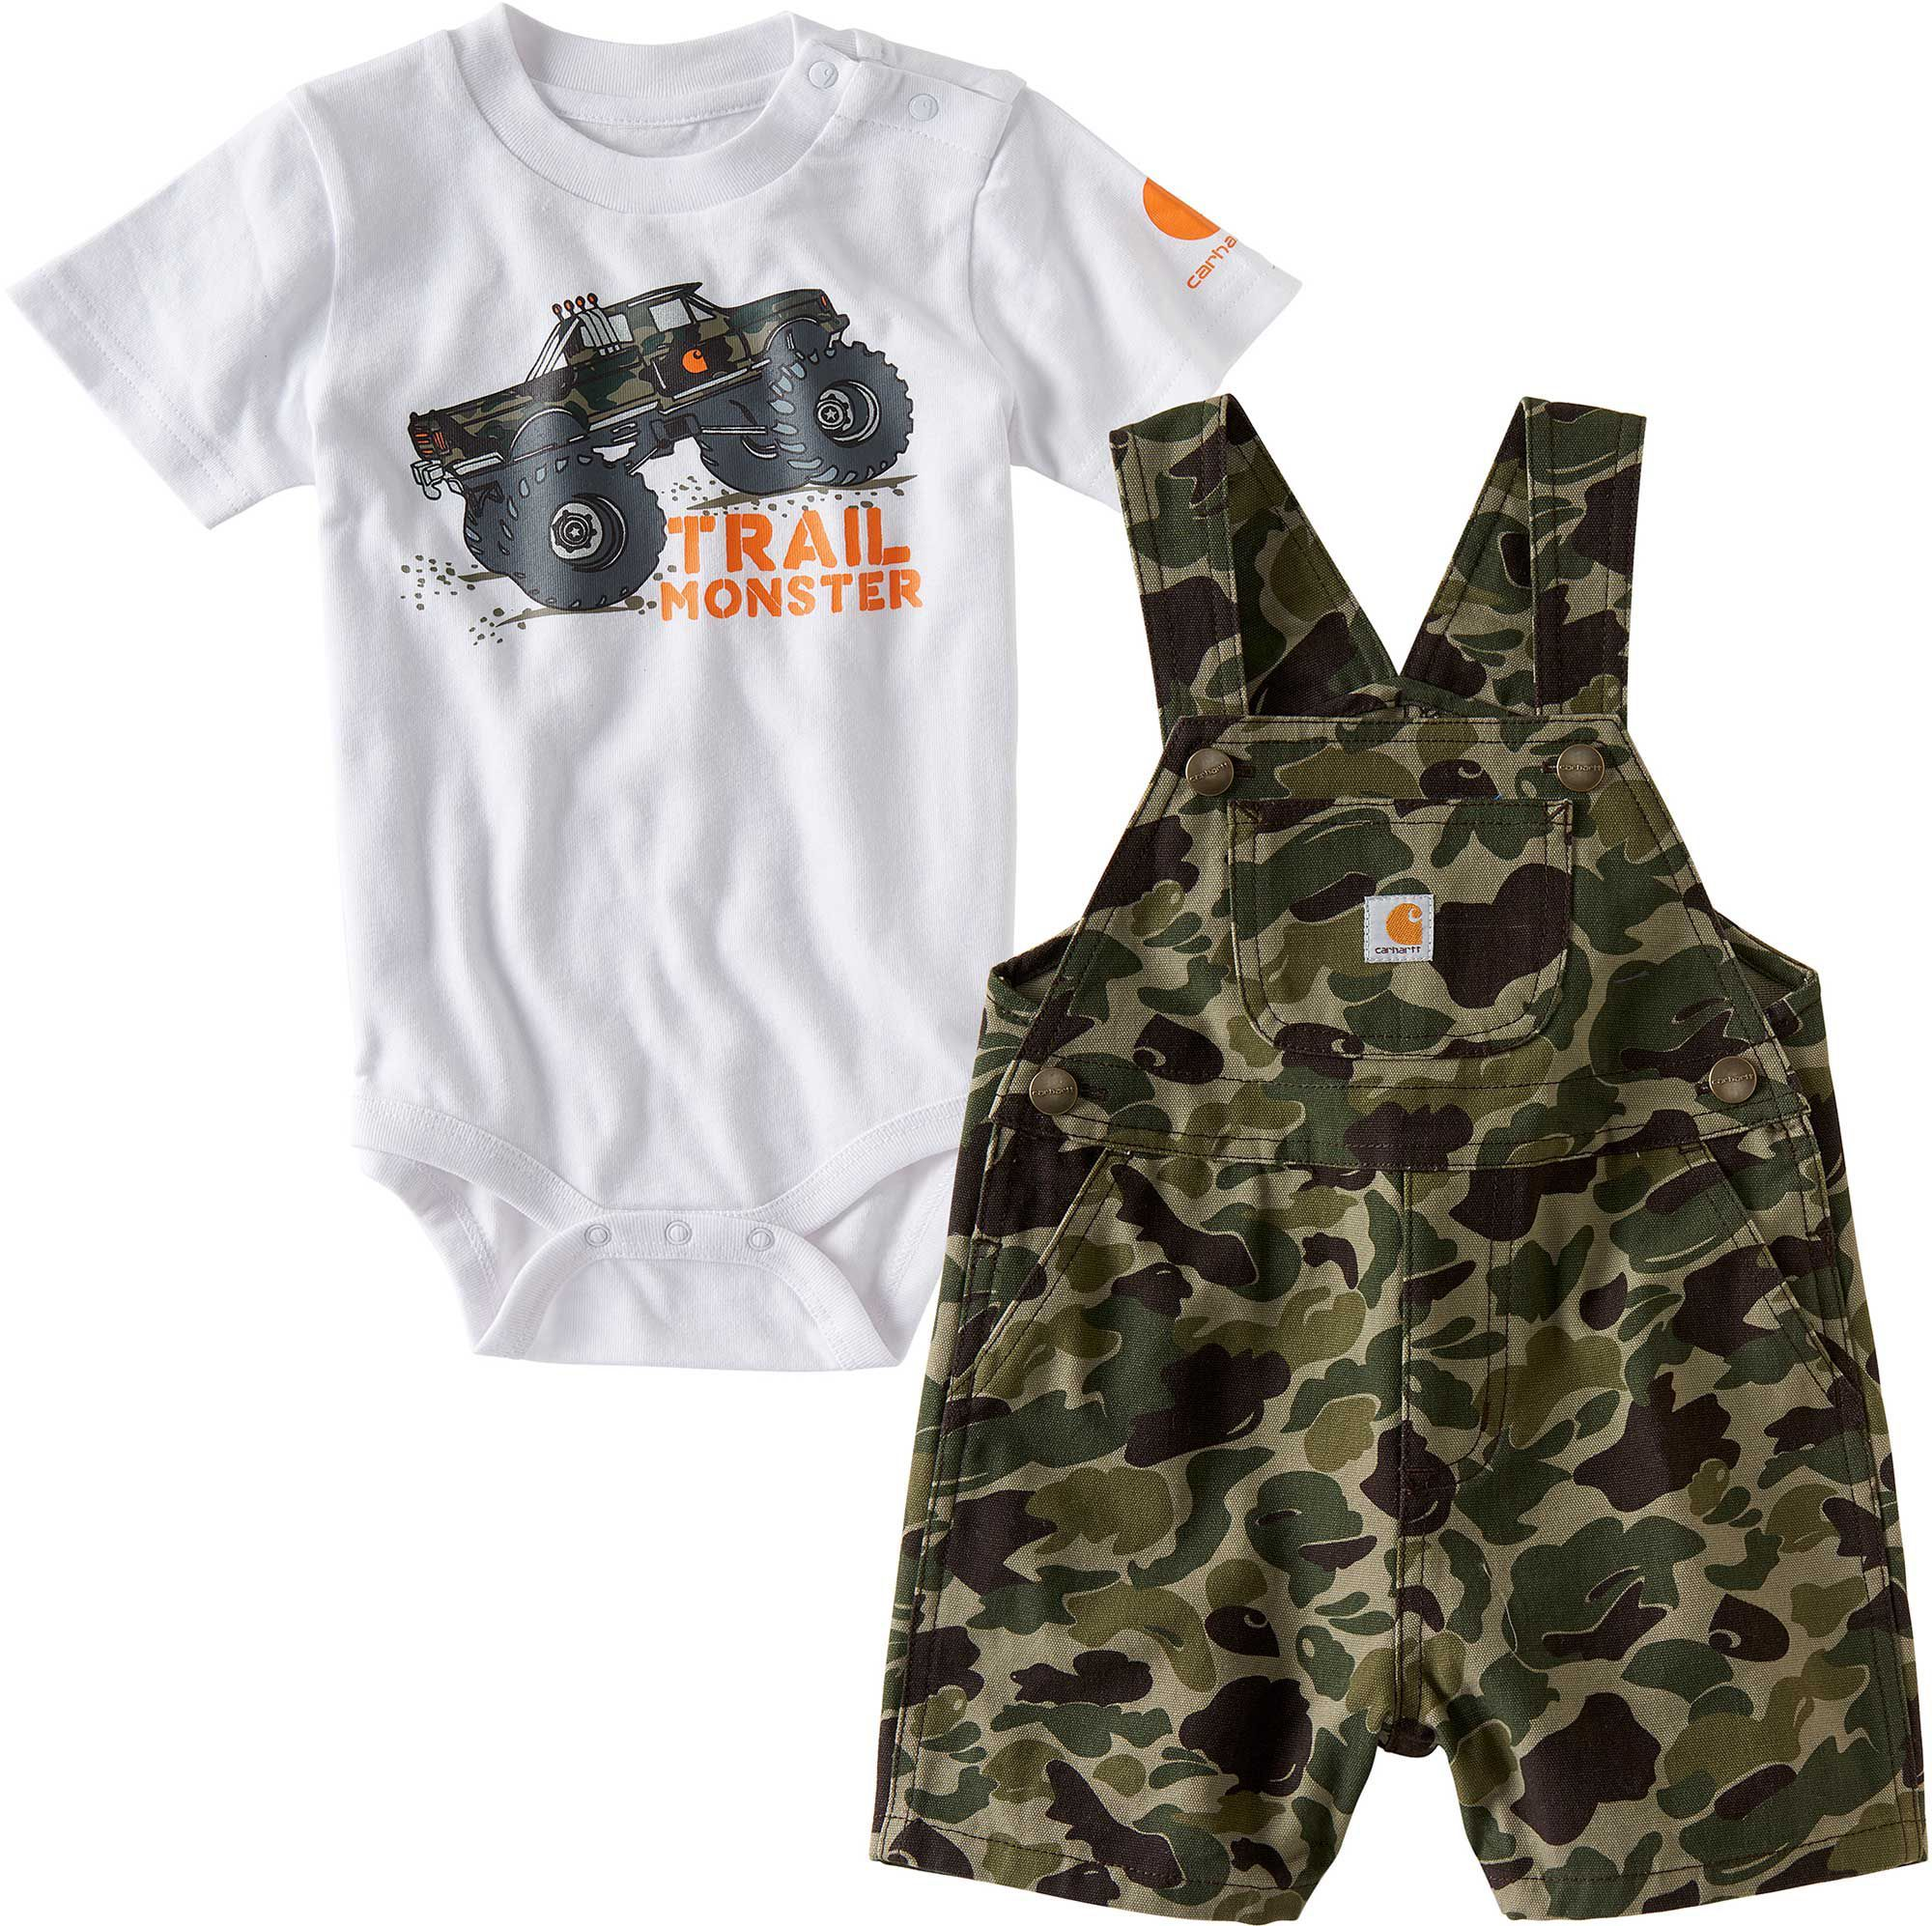 a5ca0236b Carhartt Infant Boys' Trail Monster Overall Set, Size: 9M, Green ...